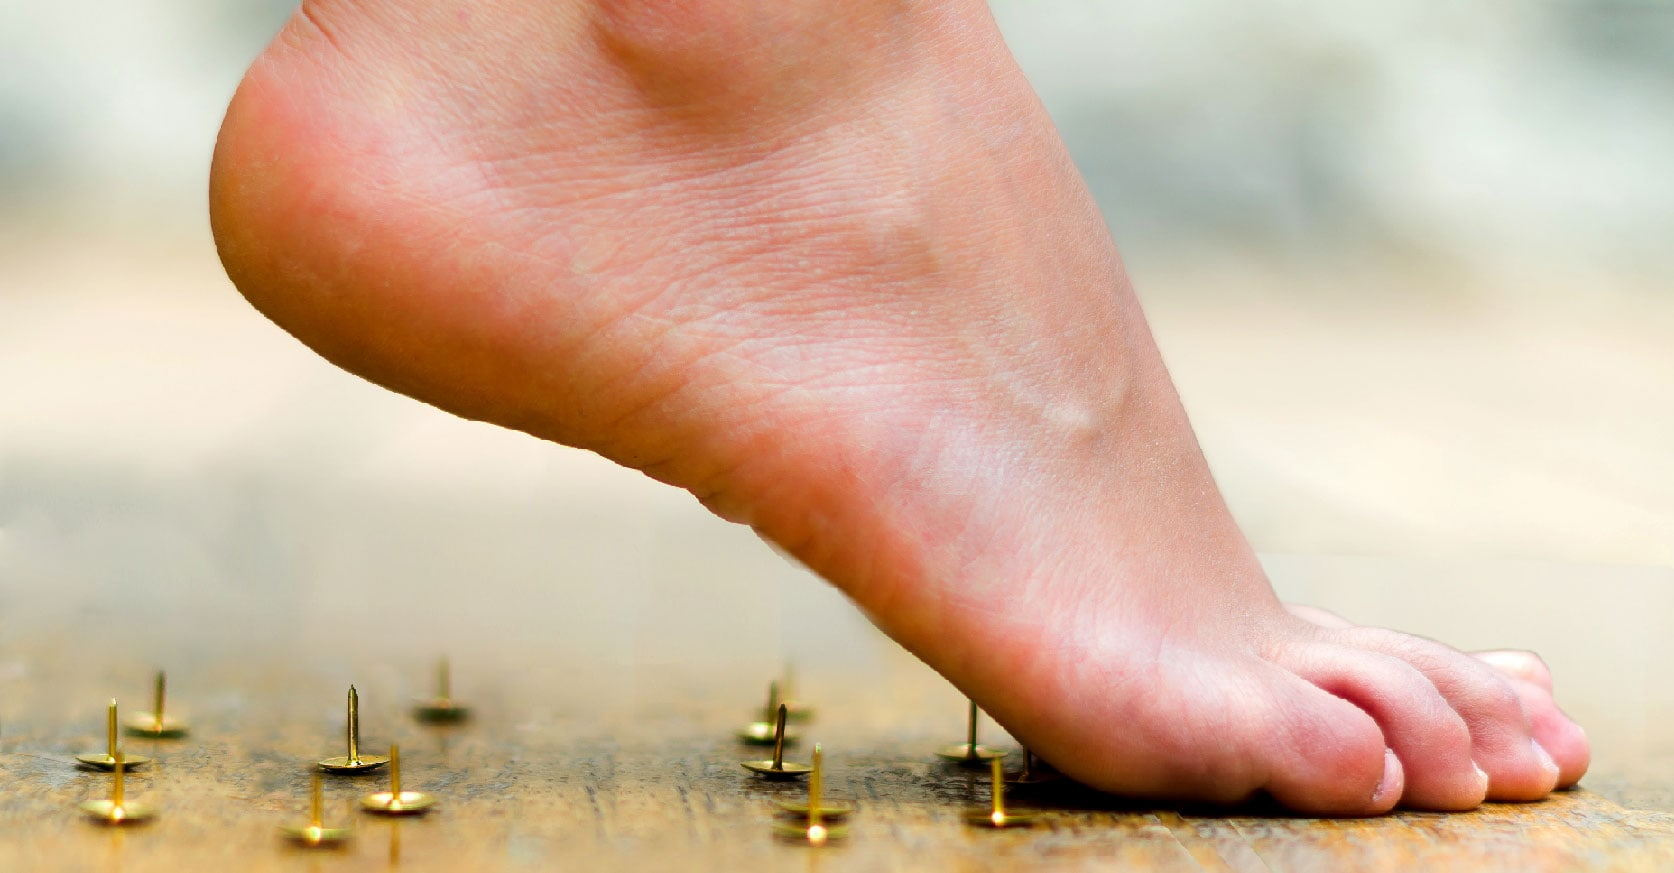 If You're Suffering With Foot and Heel Pain, Don't Ignore It.